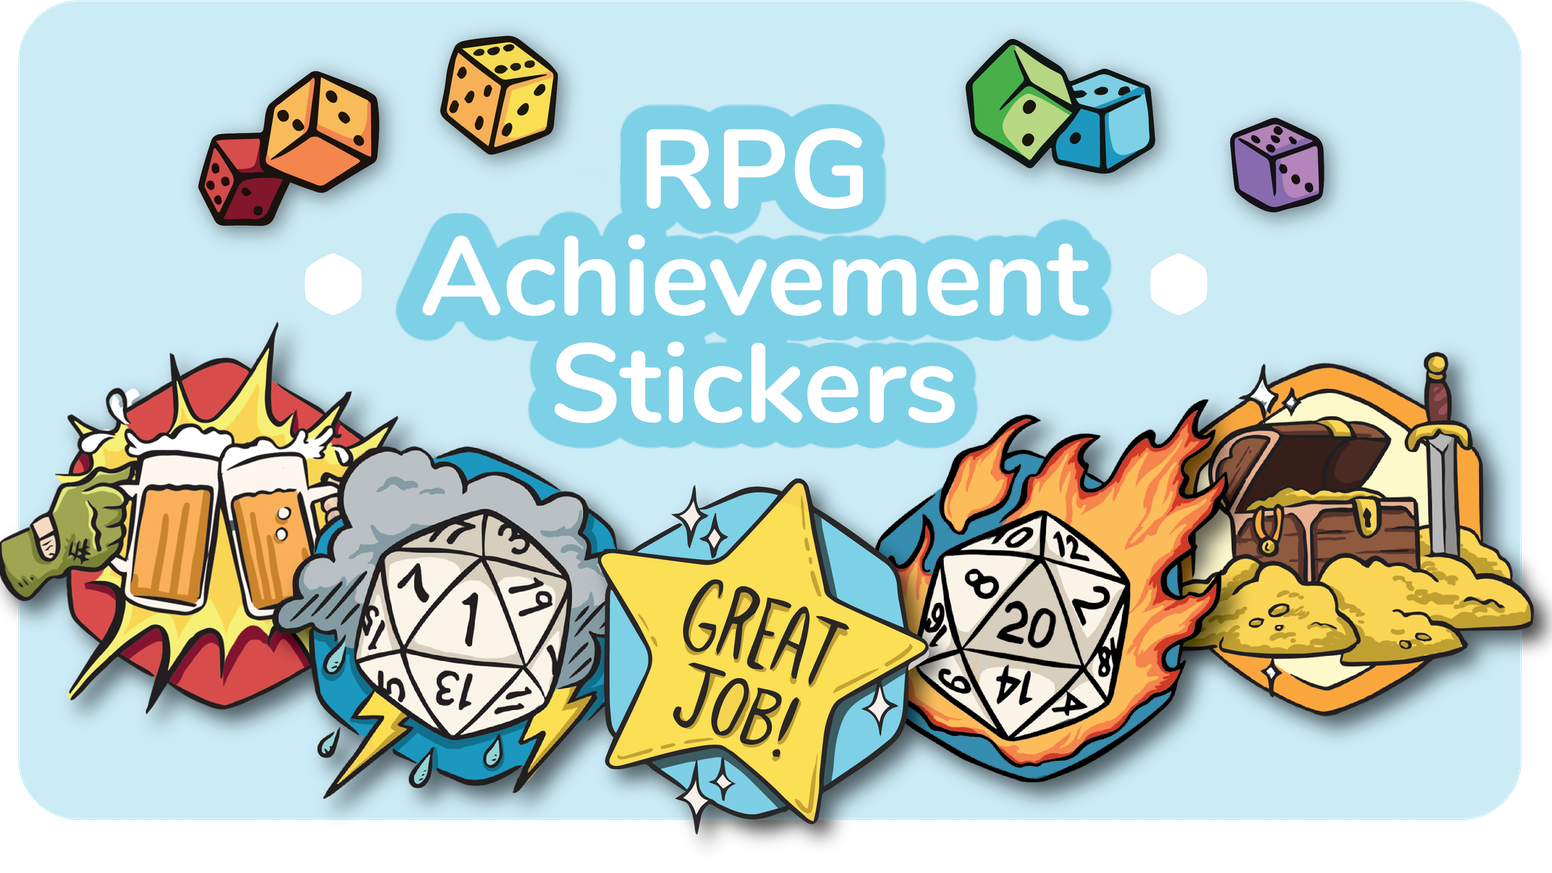 Achievement stickers for your favorite tabletop roleplaying game!